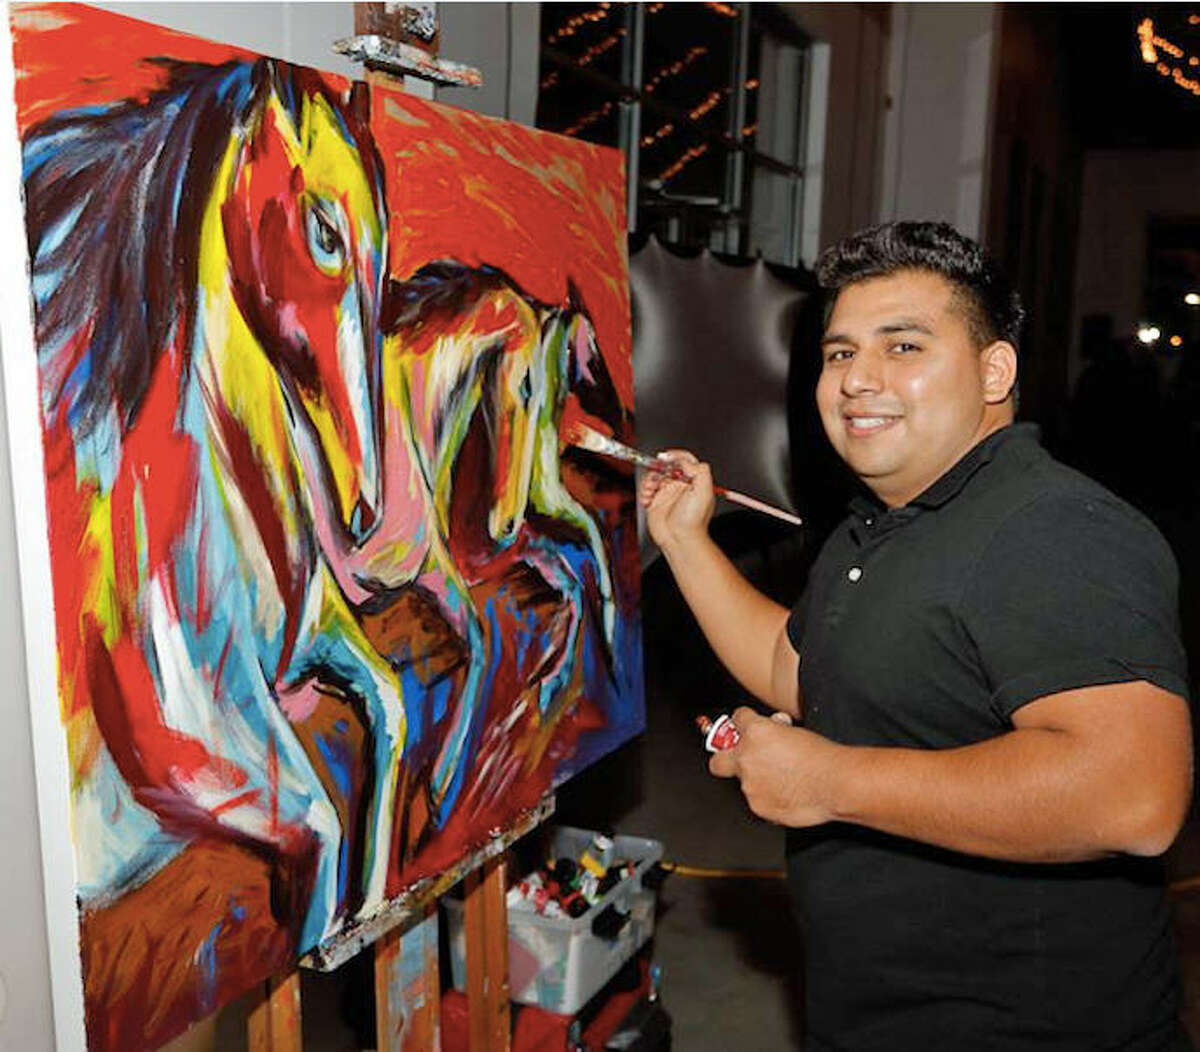 Mark Deleon works on a painting that will be exhibited at the Harvest Green Farmhouse, 3400 Harvest Corner Drive, through Oct. 20. The public can meet the artist at a reception 6-8 p.m. Thursday, Sept. 21.